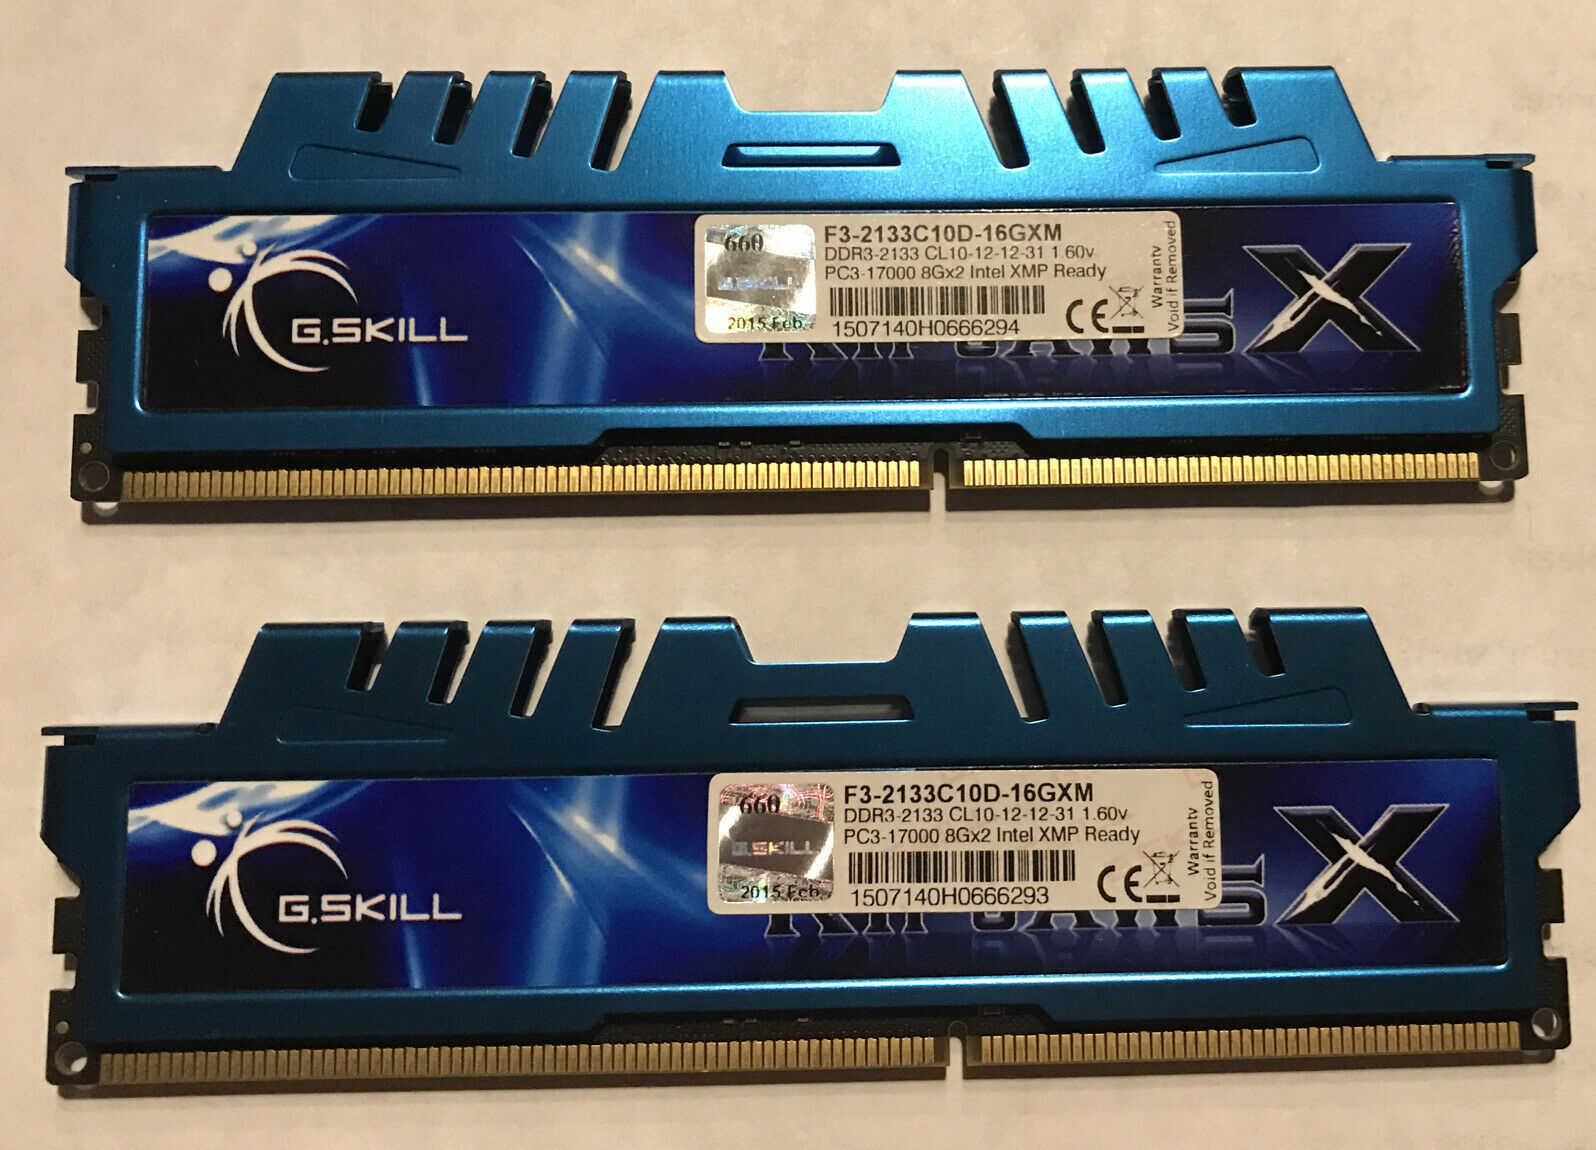 G. SKILL 16 GB UDIMM 2133 MHz PC3-17000 DDR3 Memory (F3-2133C10D-16GXM). Buy it now for 70.00